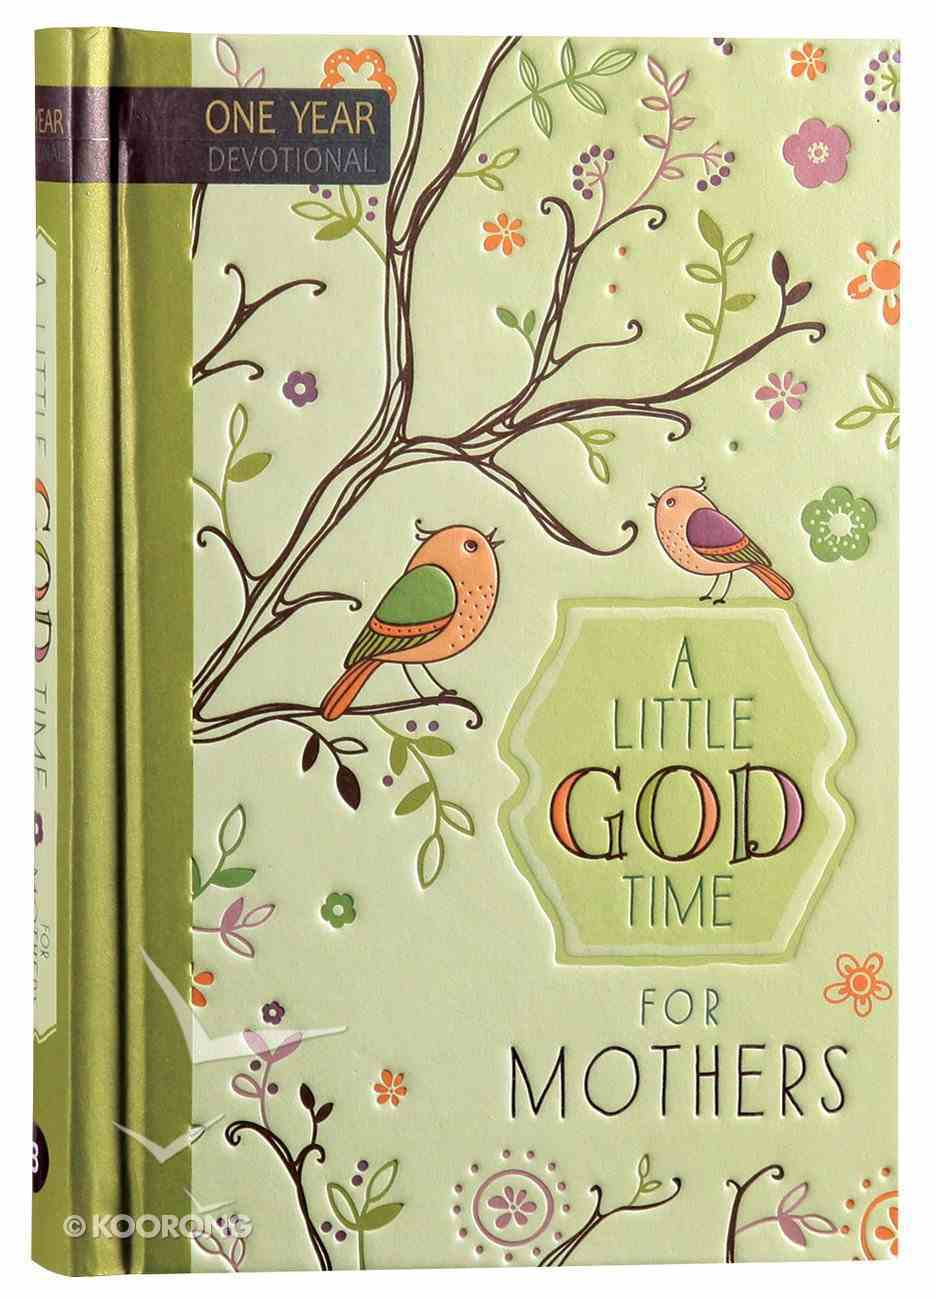 Little God Time For Mothers, A: 365 Daily Devotions (365 Daily Devotions Series) Hardback